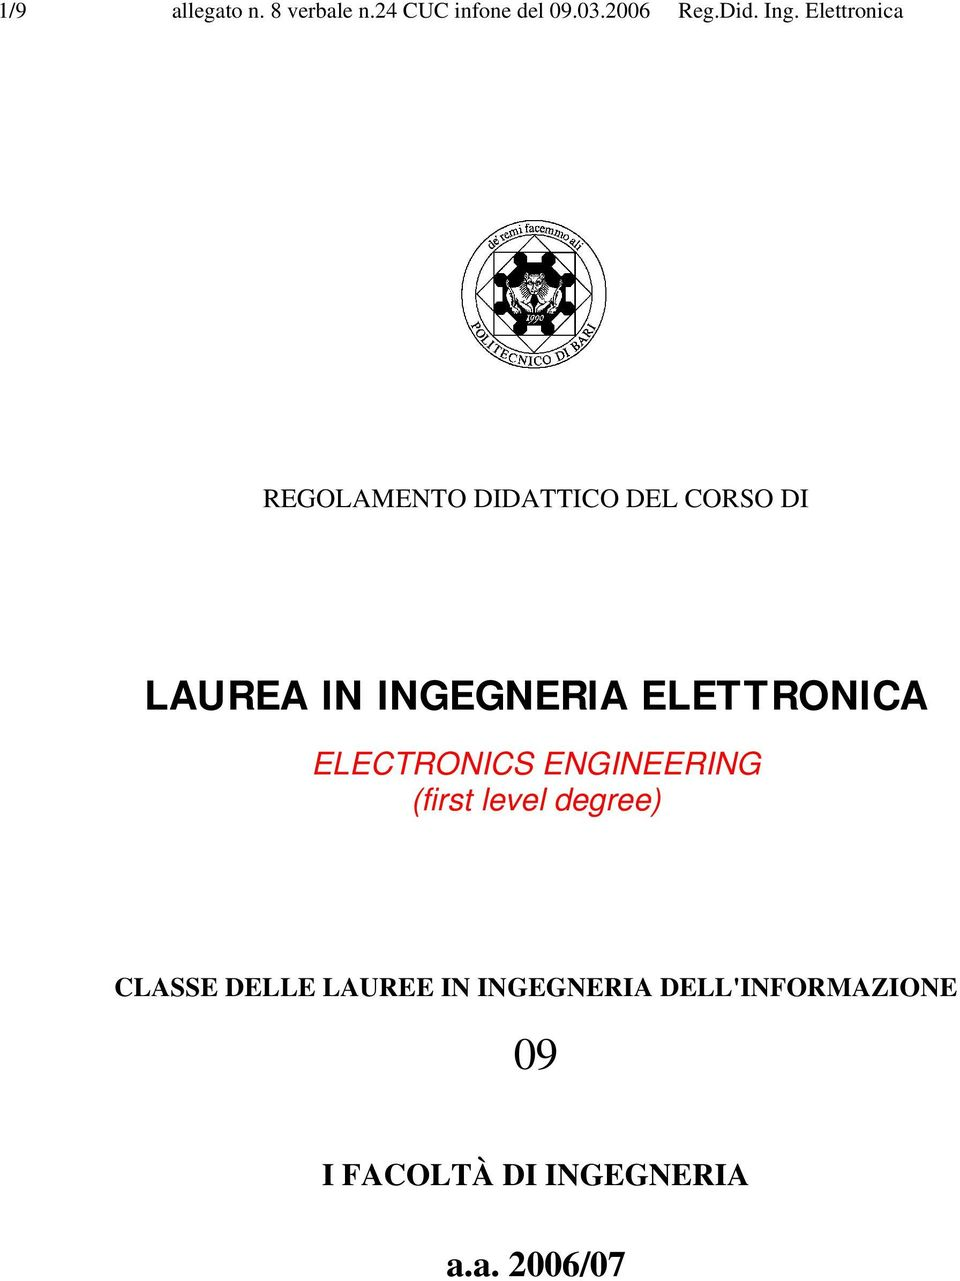 ELETTRONICA ELECTRONICS ENGINEERING (first level degree) CLASSE DELLE